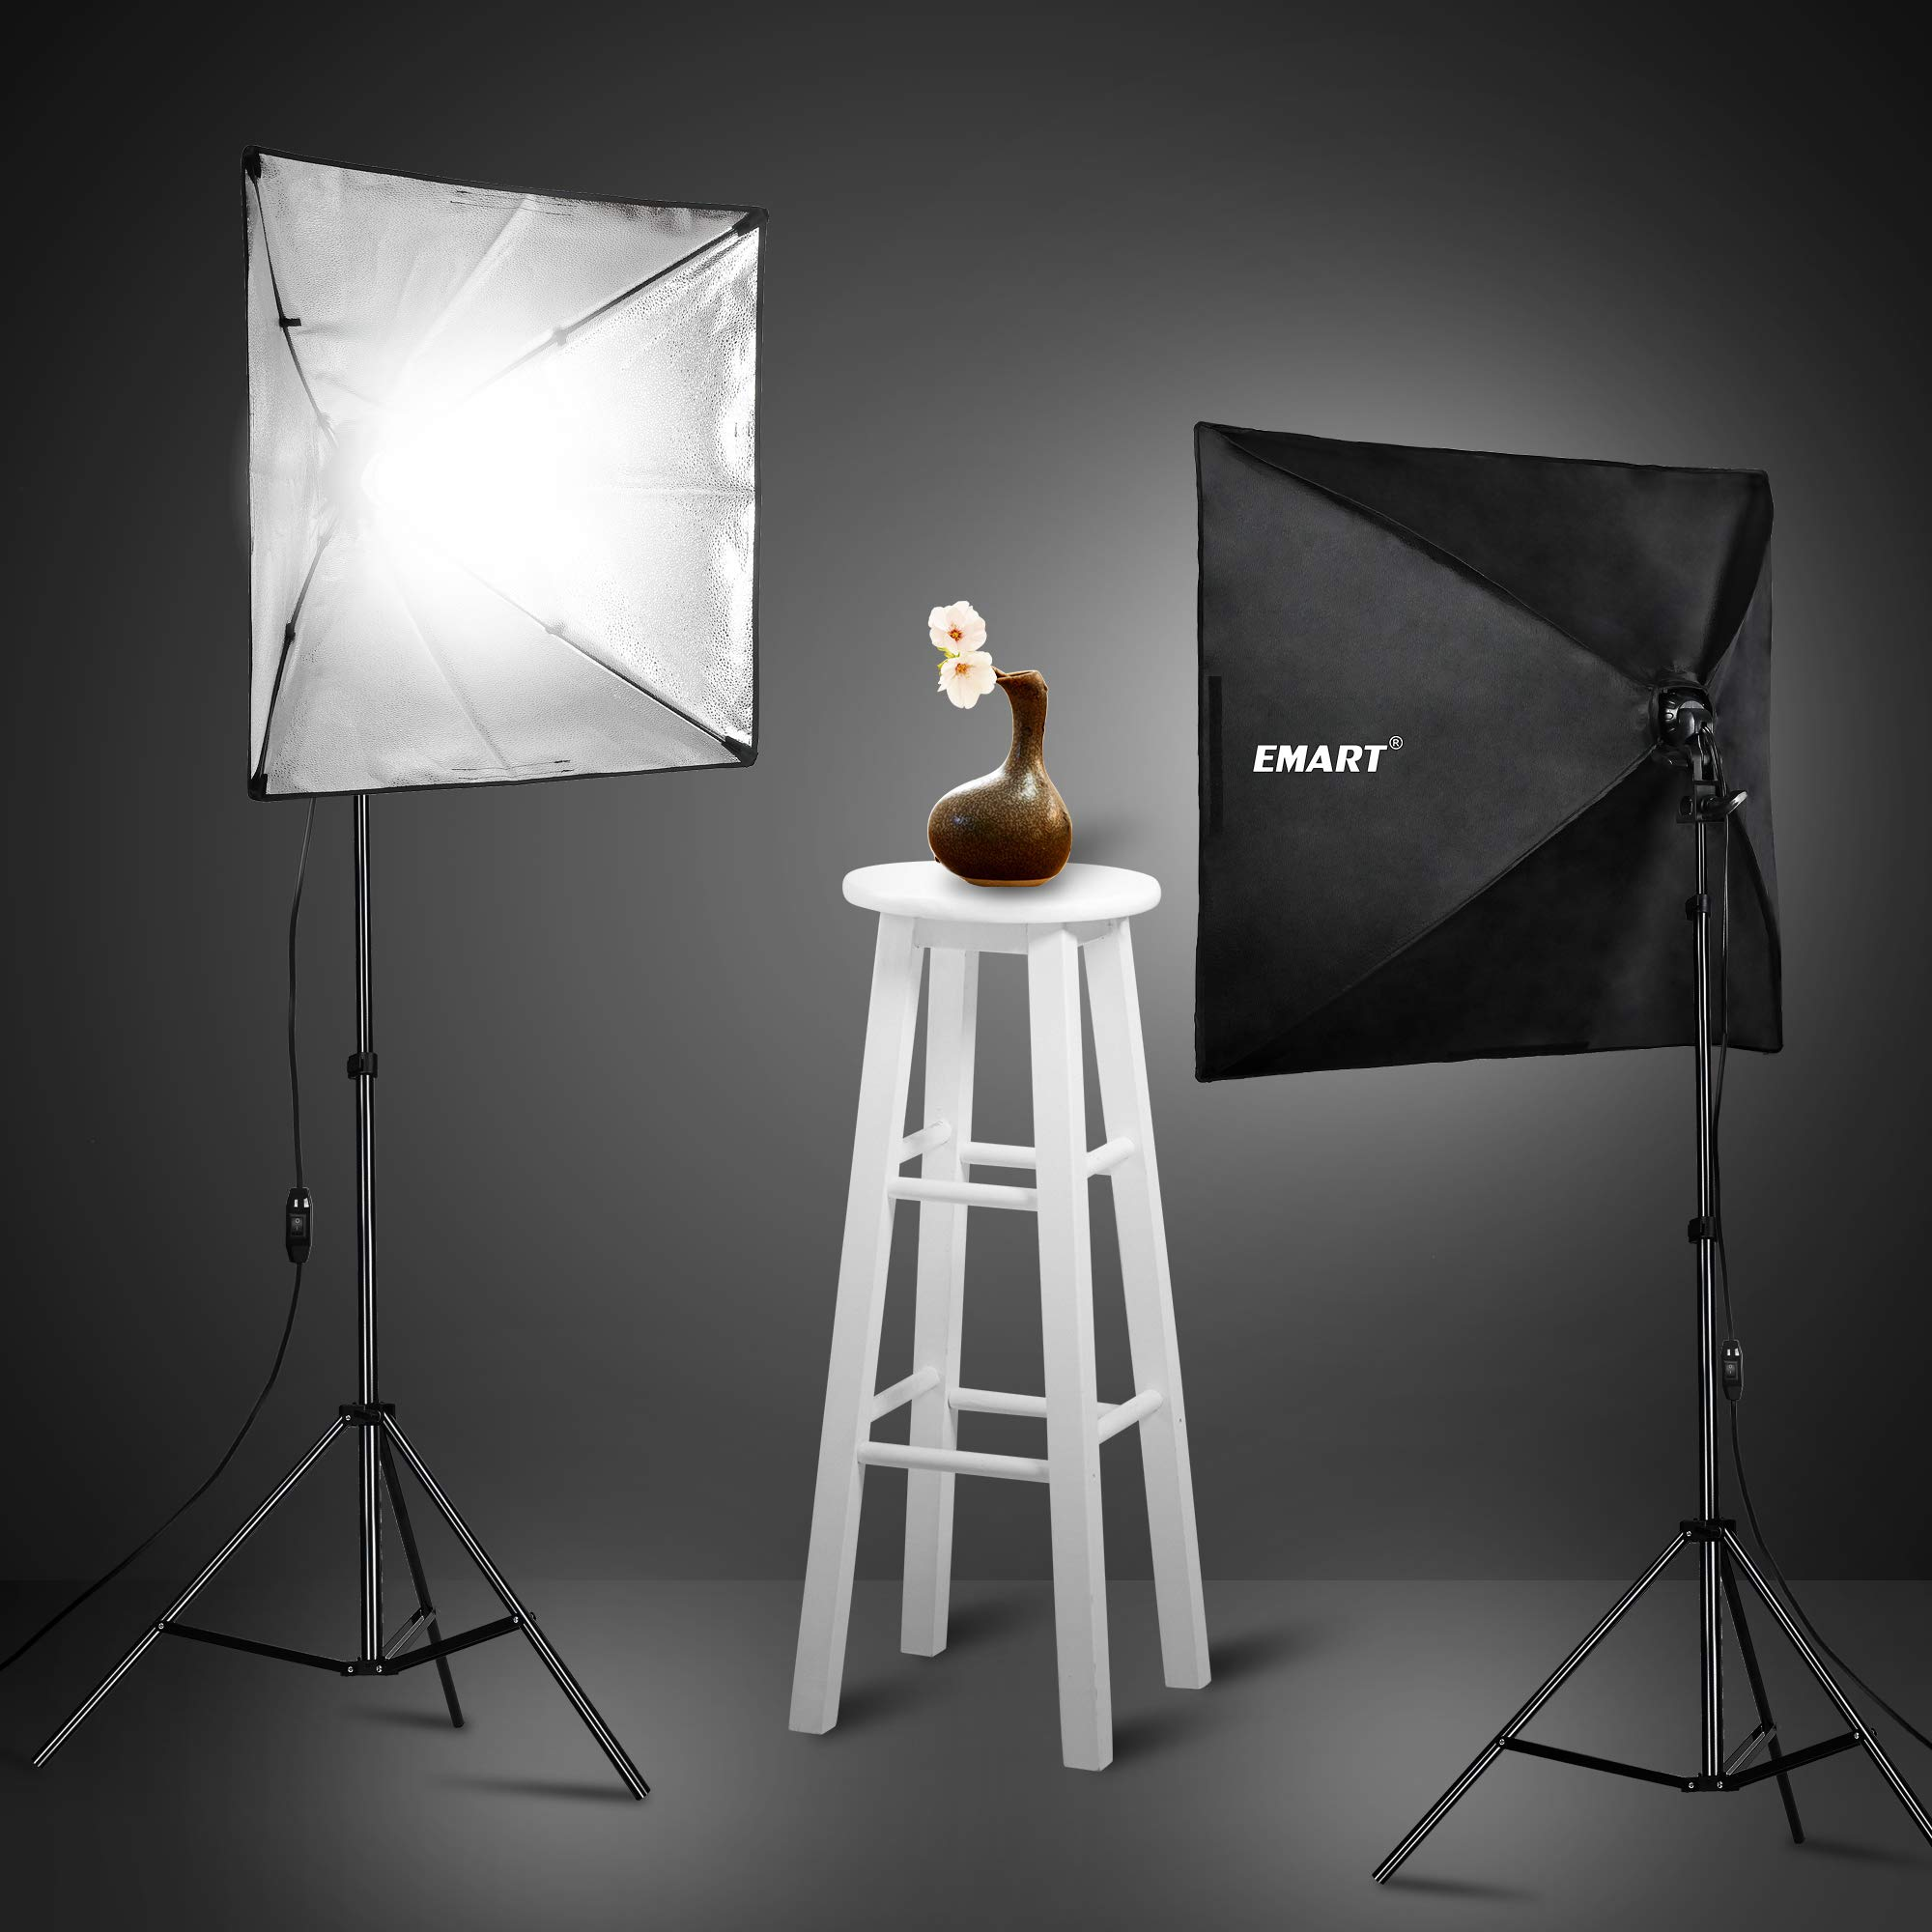 Emart 900W Softbox Lighting Kit Photography Continuous Photo Studio Light System for YouTube Video Shooting Soft Box 24'' x 24'' by EMART (Image #6)